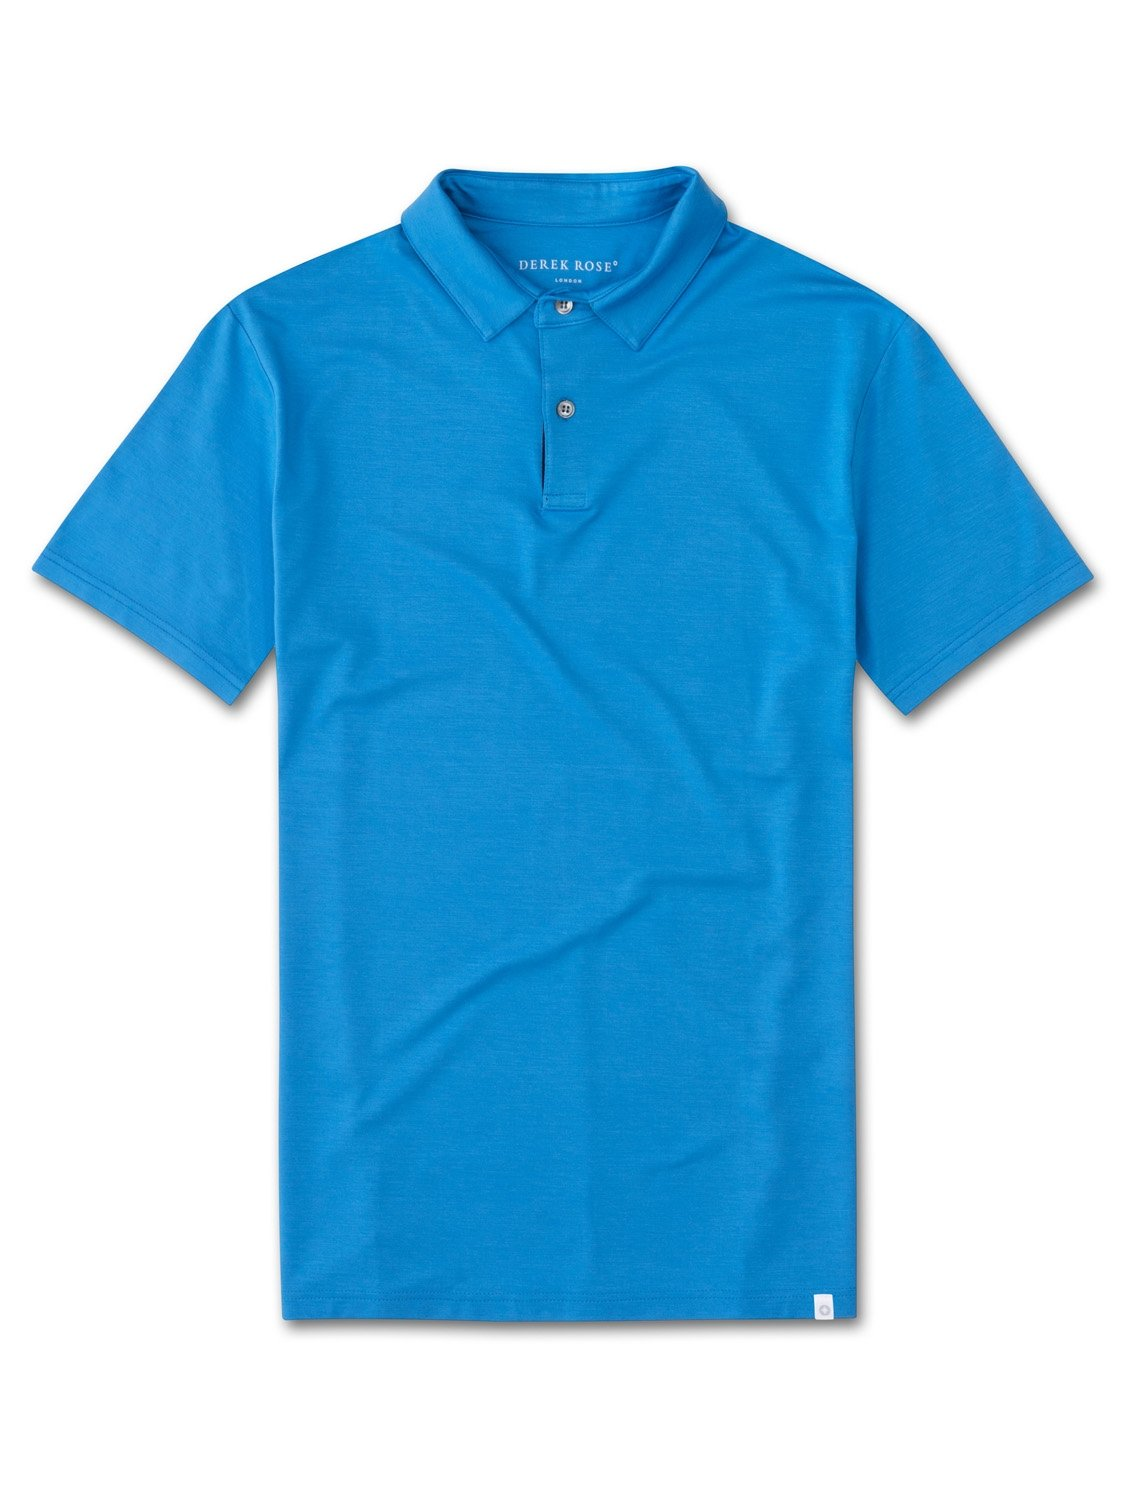 Men's Short Sleeve Polo Shirt Basel 4 Micro Modal Stretch Blue